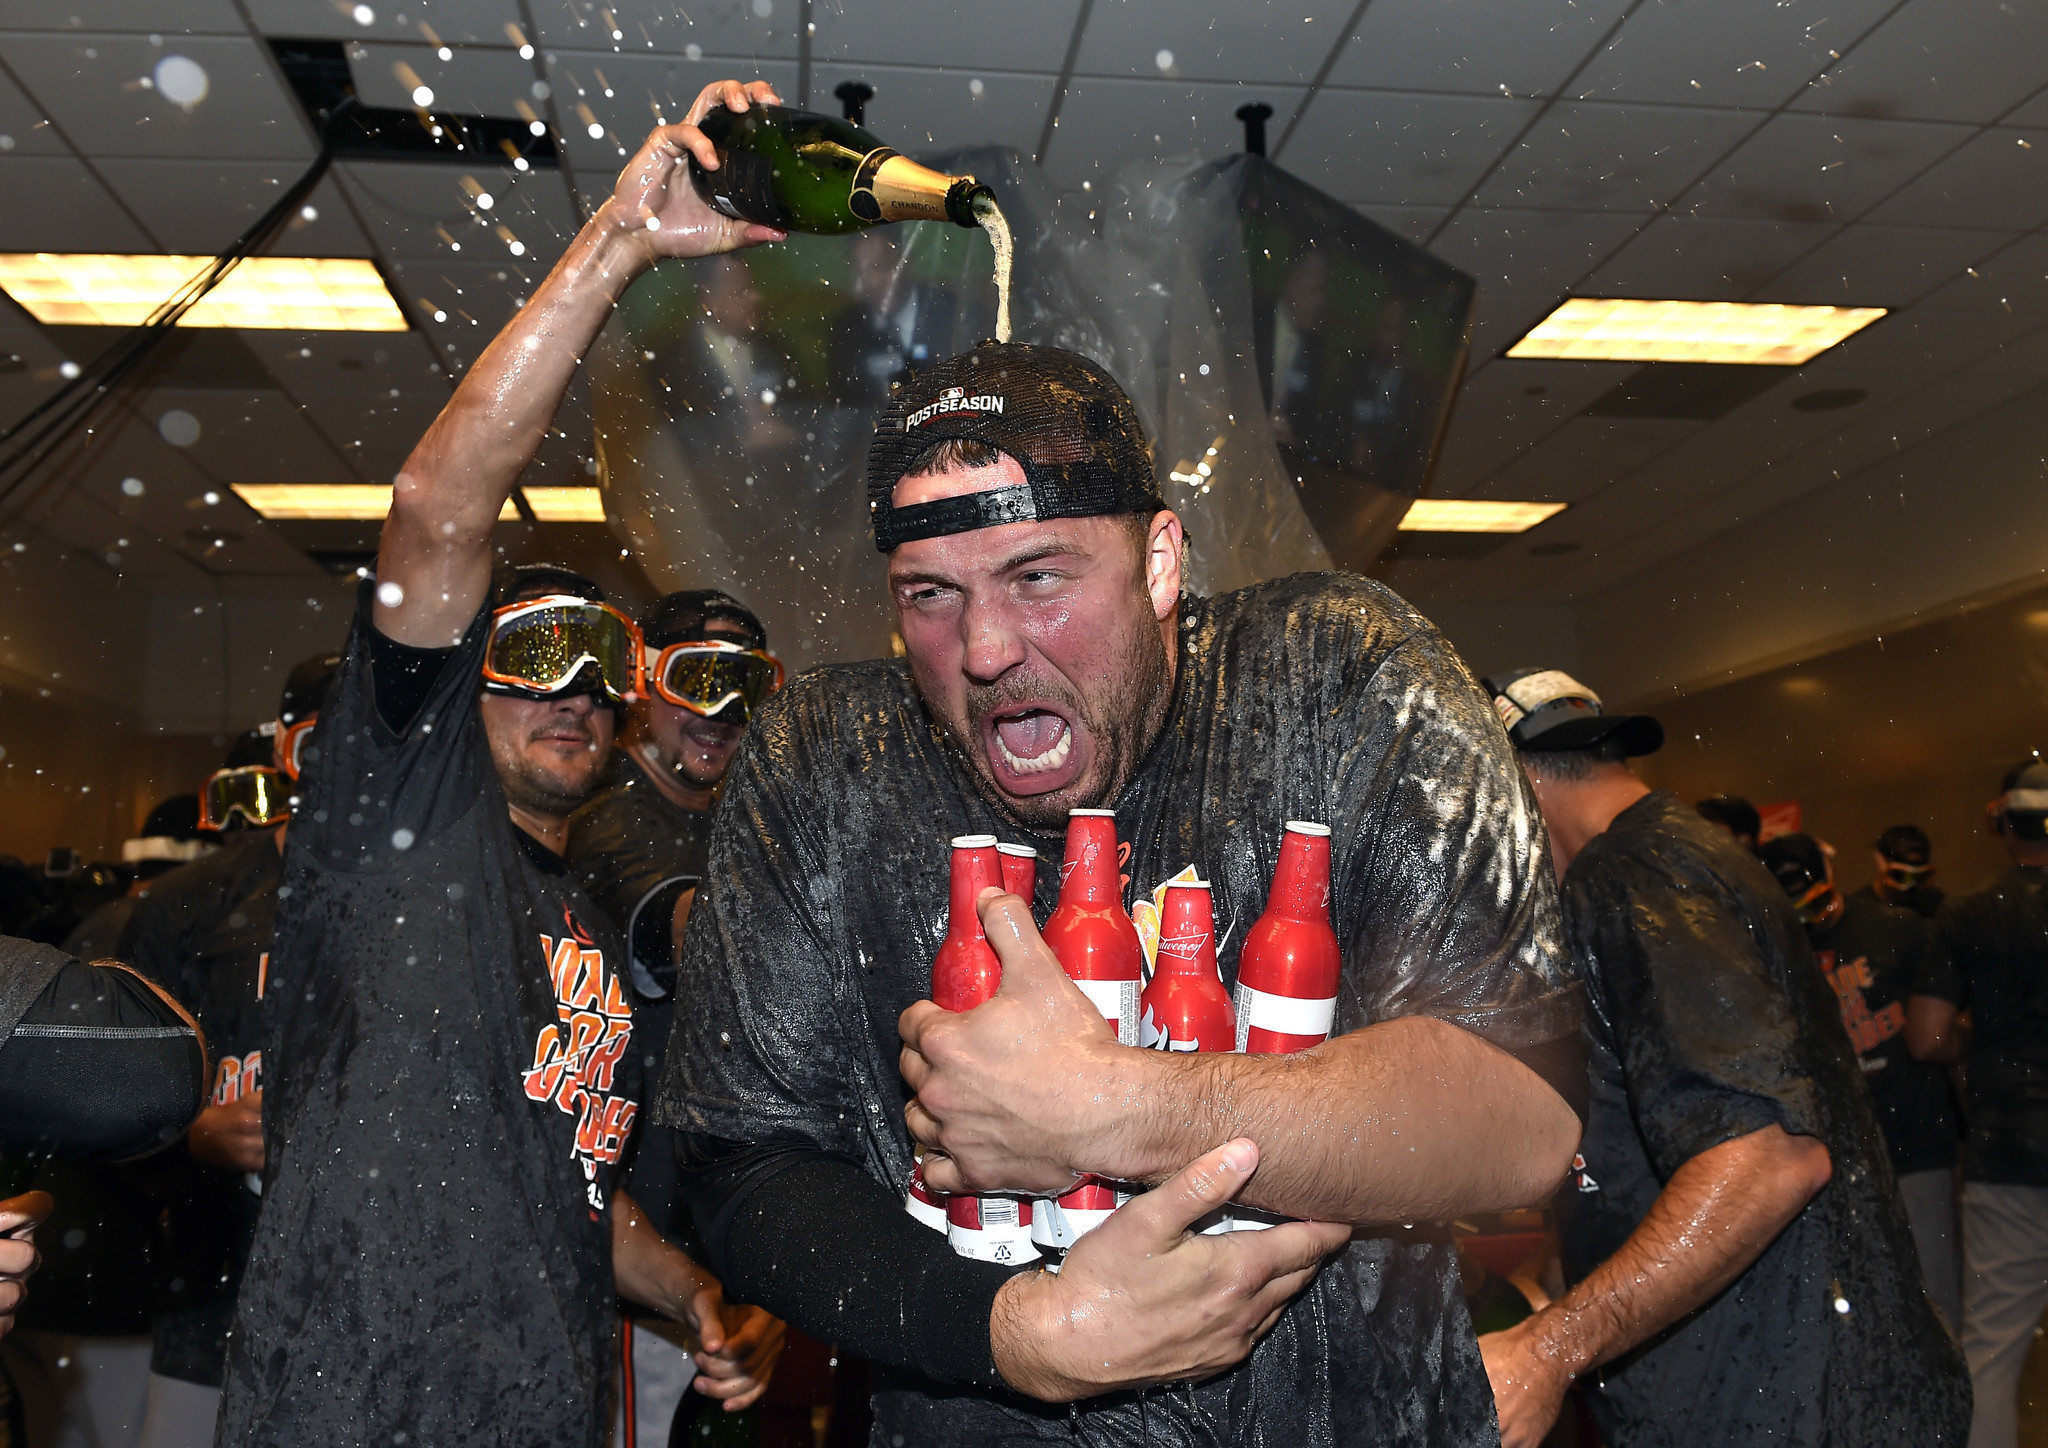 Bal-tommy-hunter-masn-f-bombs-orioles-clubhouse-20161003